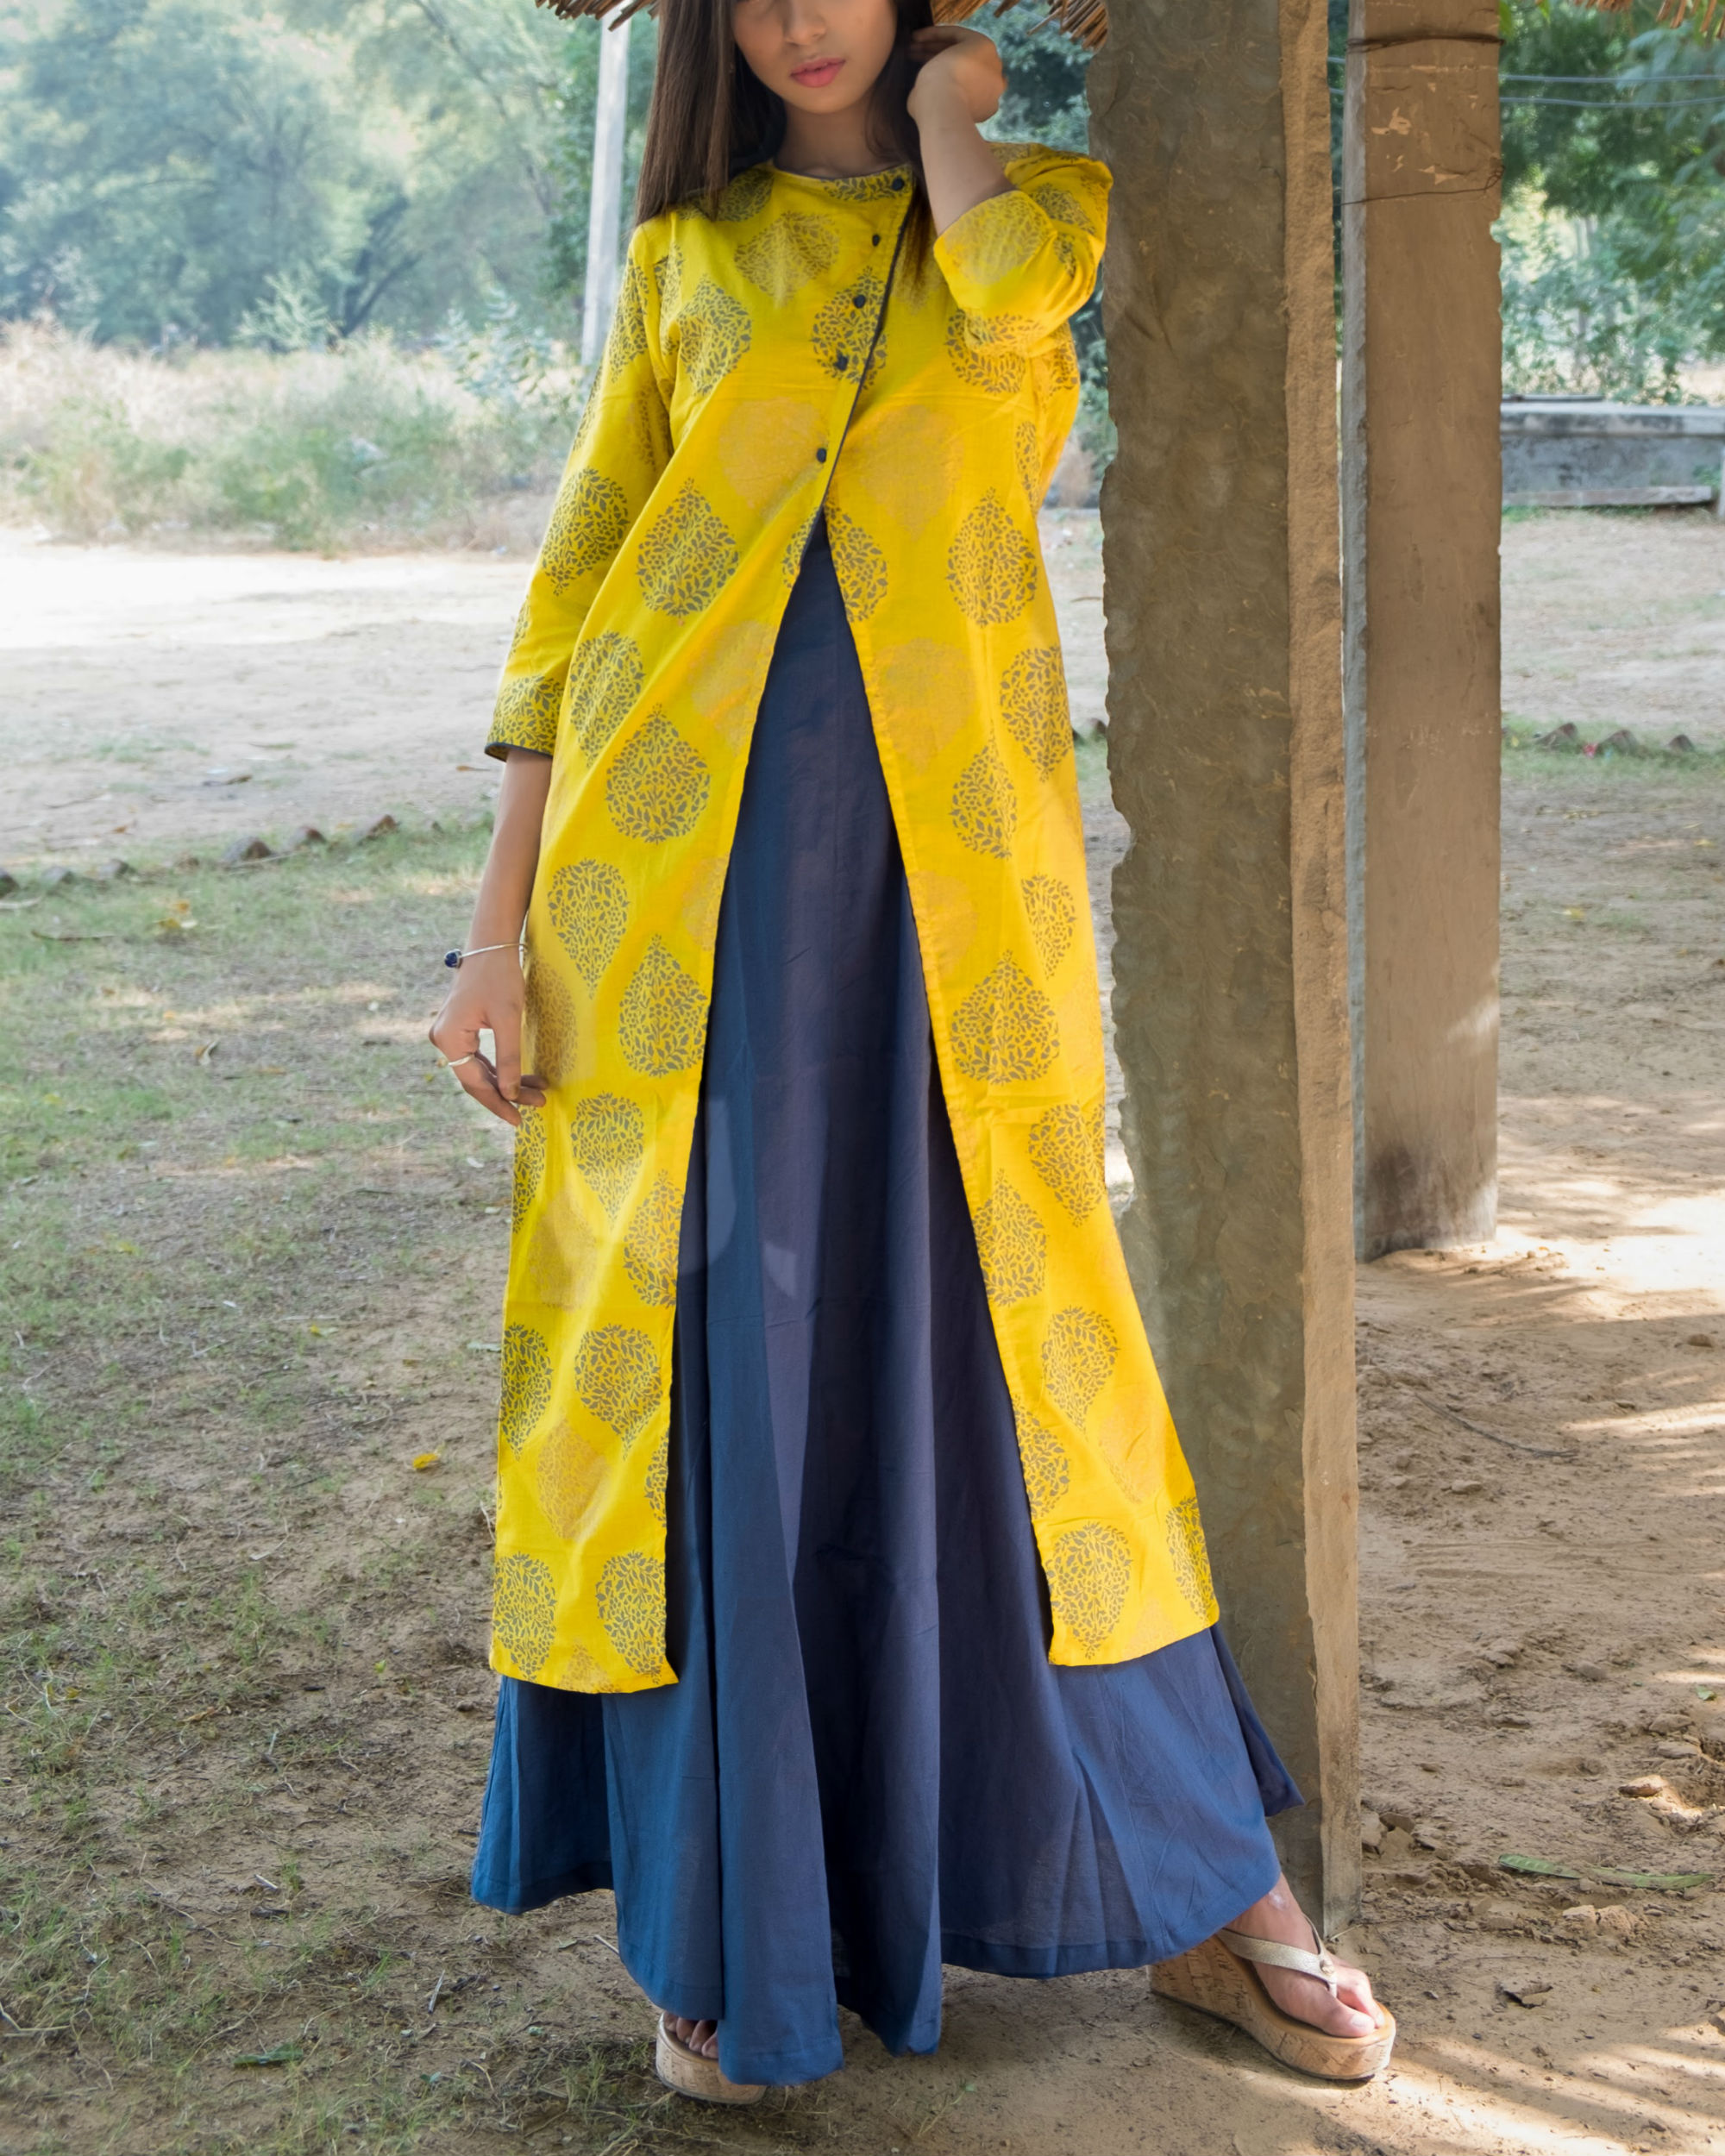 Blue and Yellow double layered dress